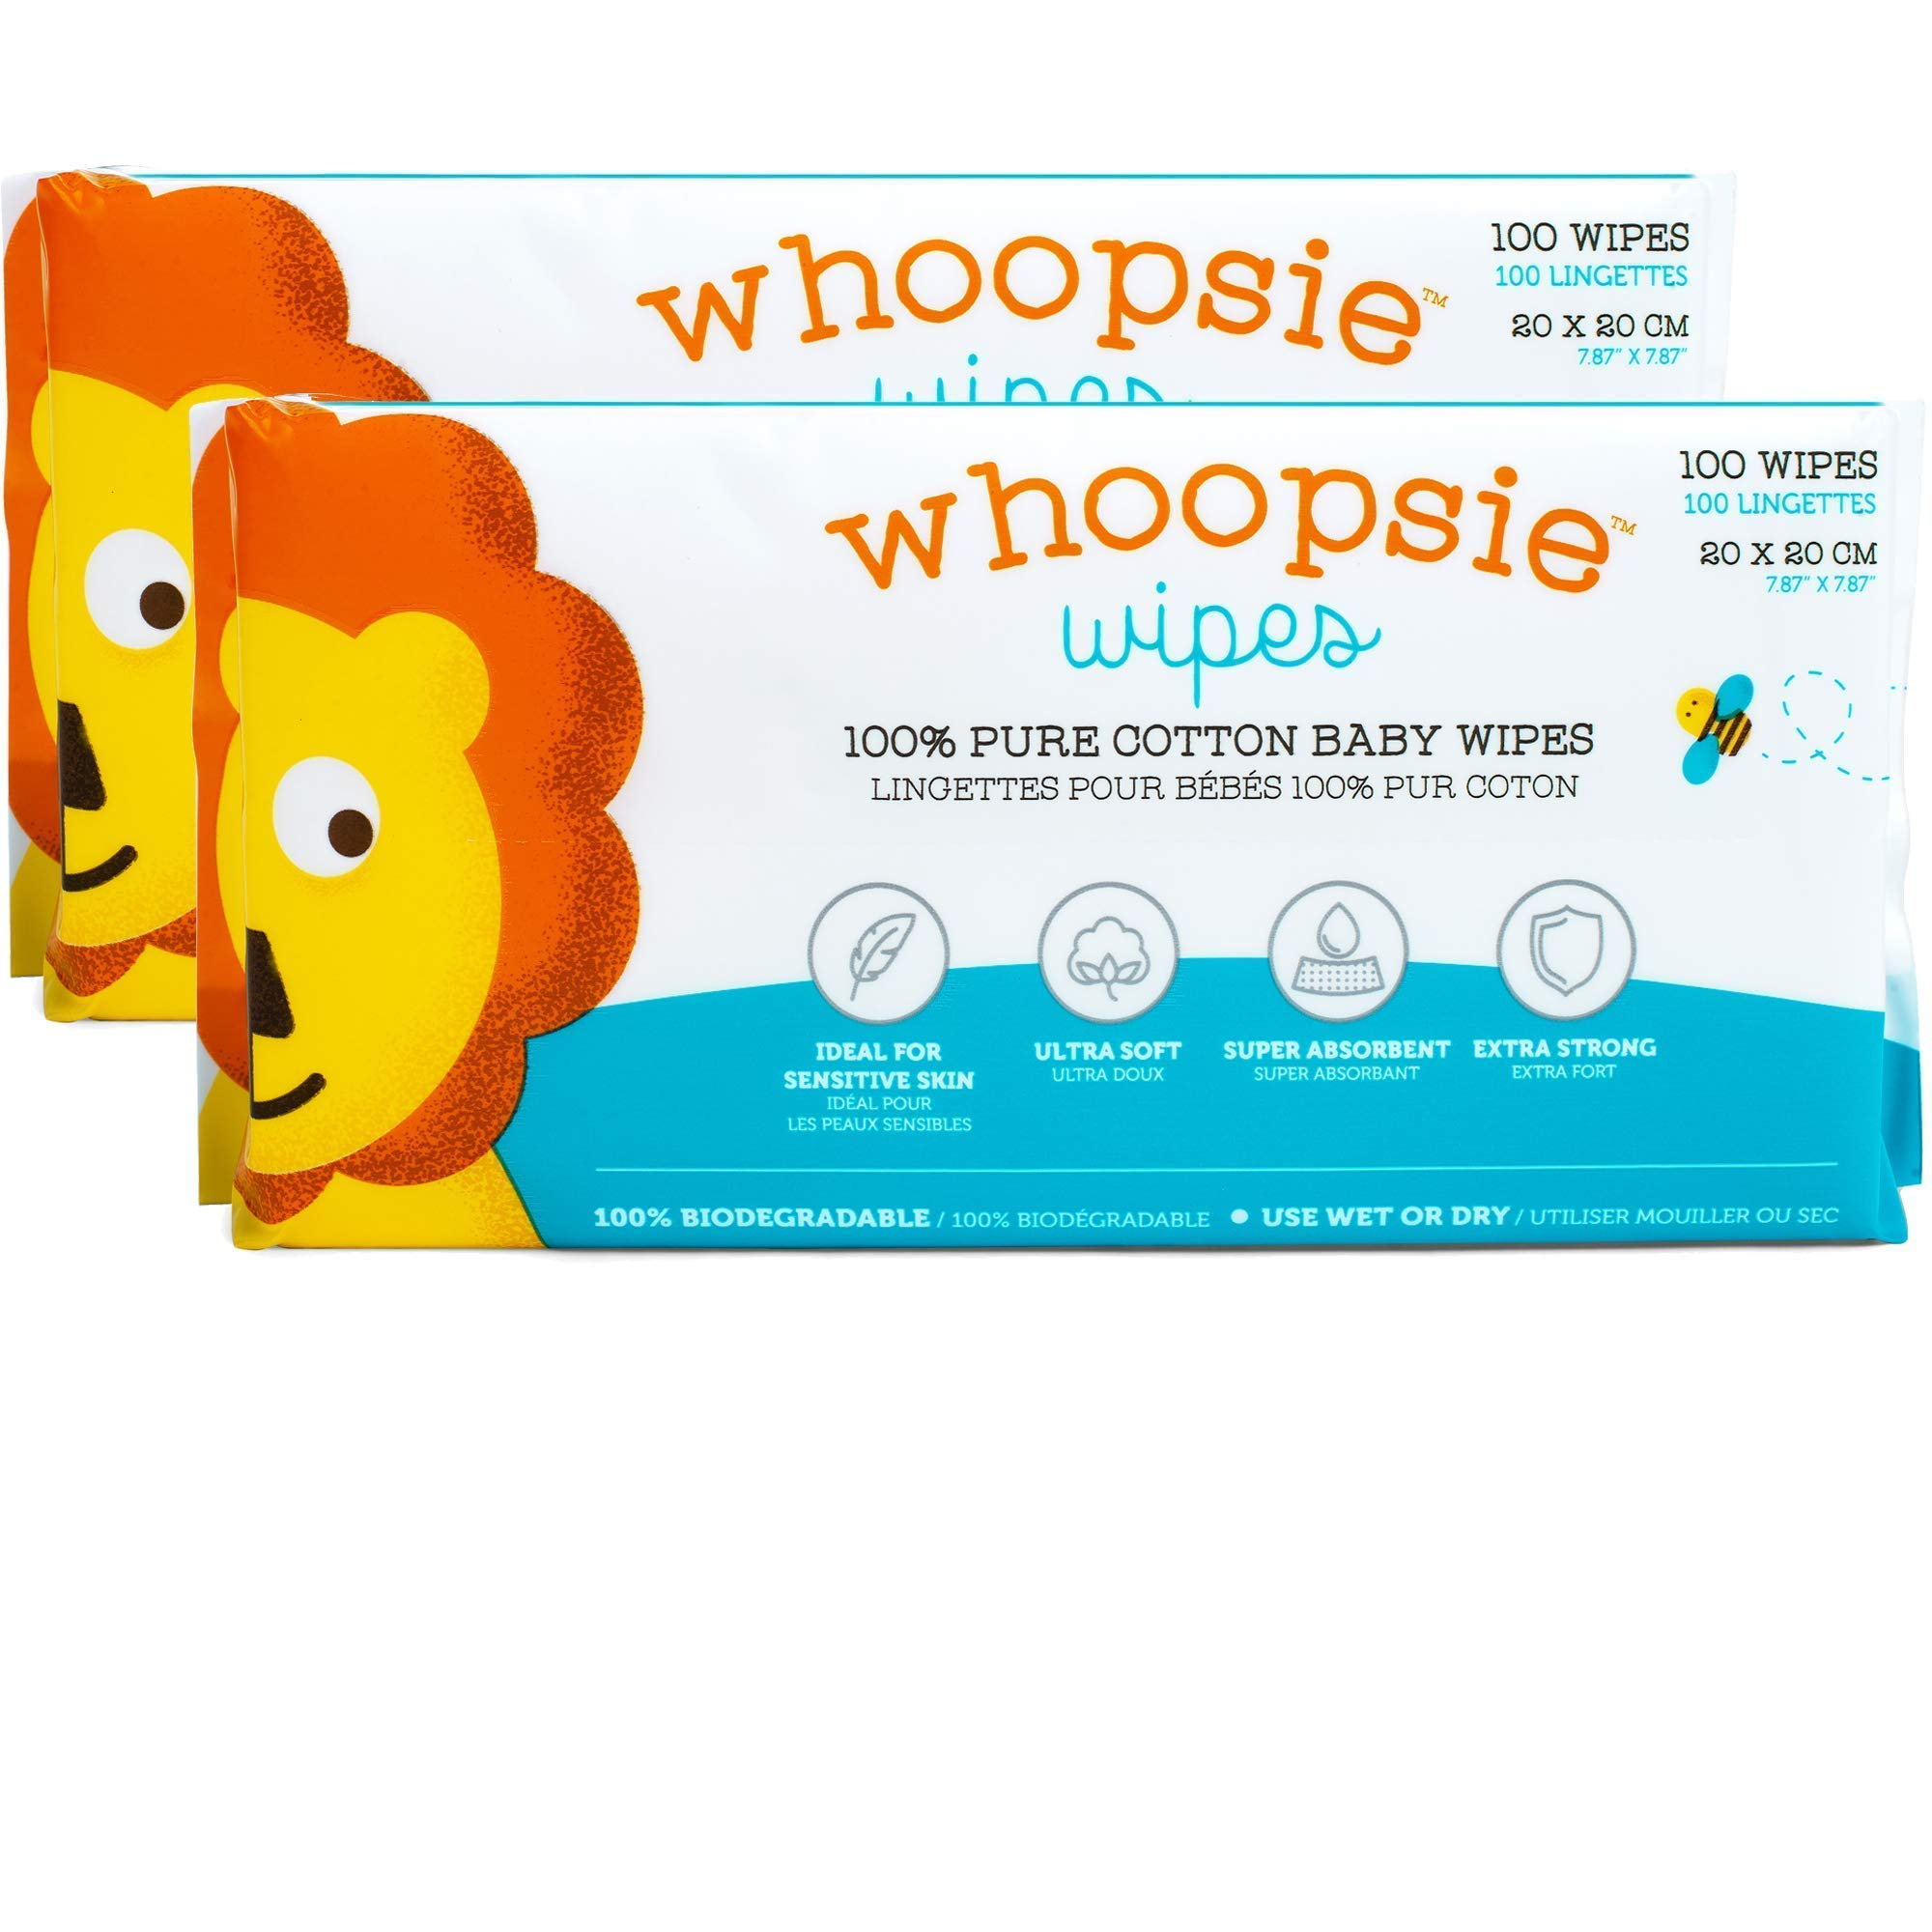 Whoopsie Wipes | Ultra-Soft – 100% Pure Cotton Dry Baby Wipes | Use Wet or Dry | Soft & Sensitive | Hypoallergenic…